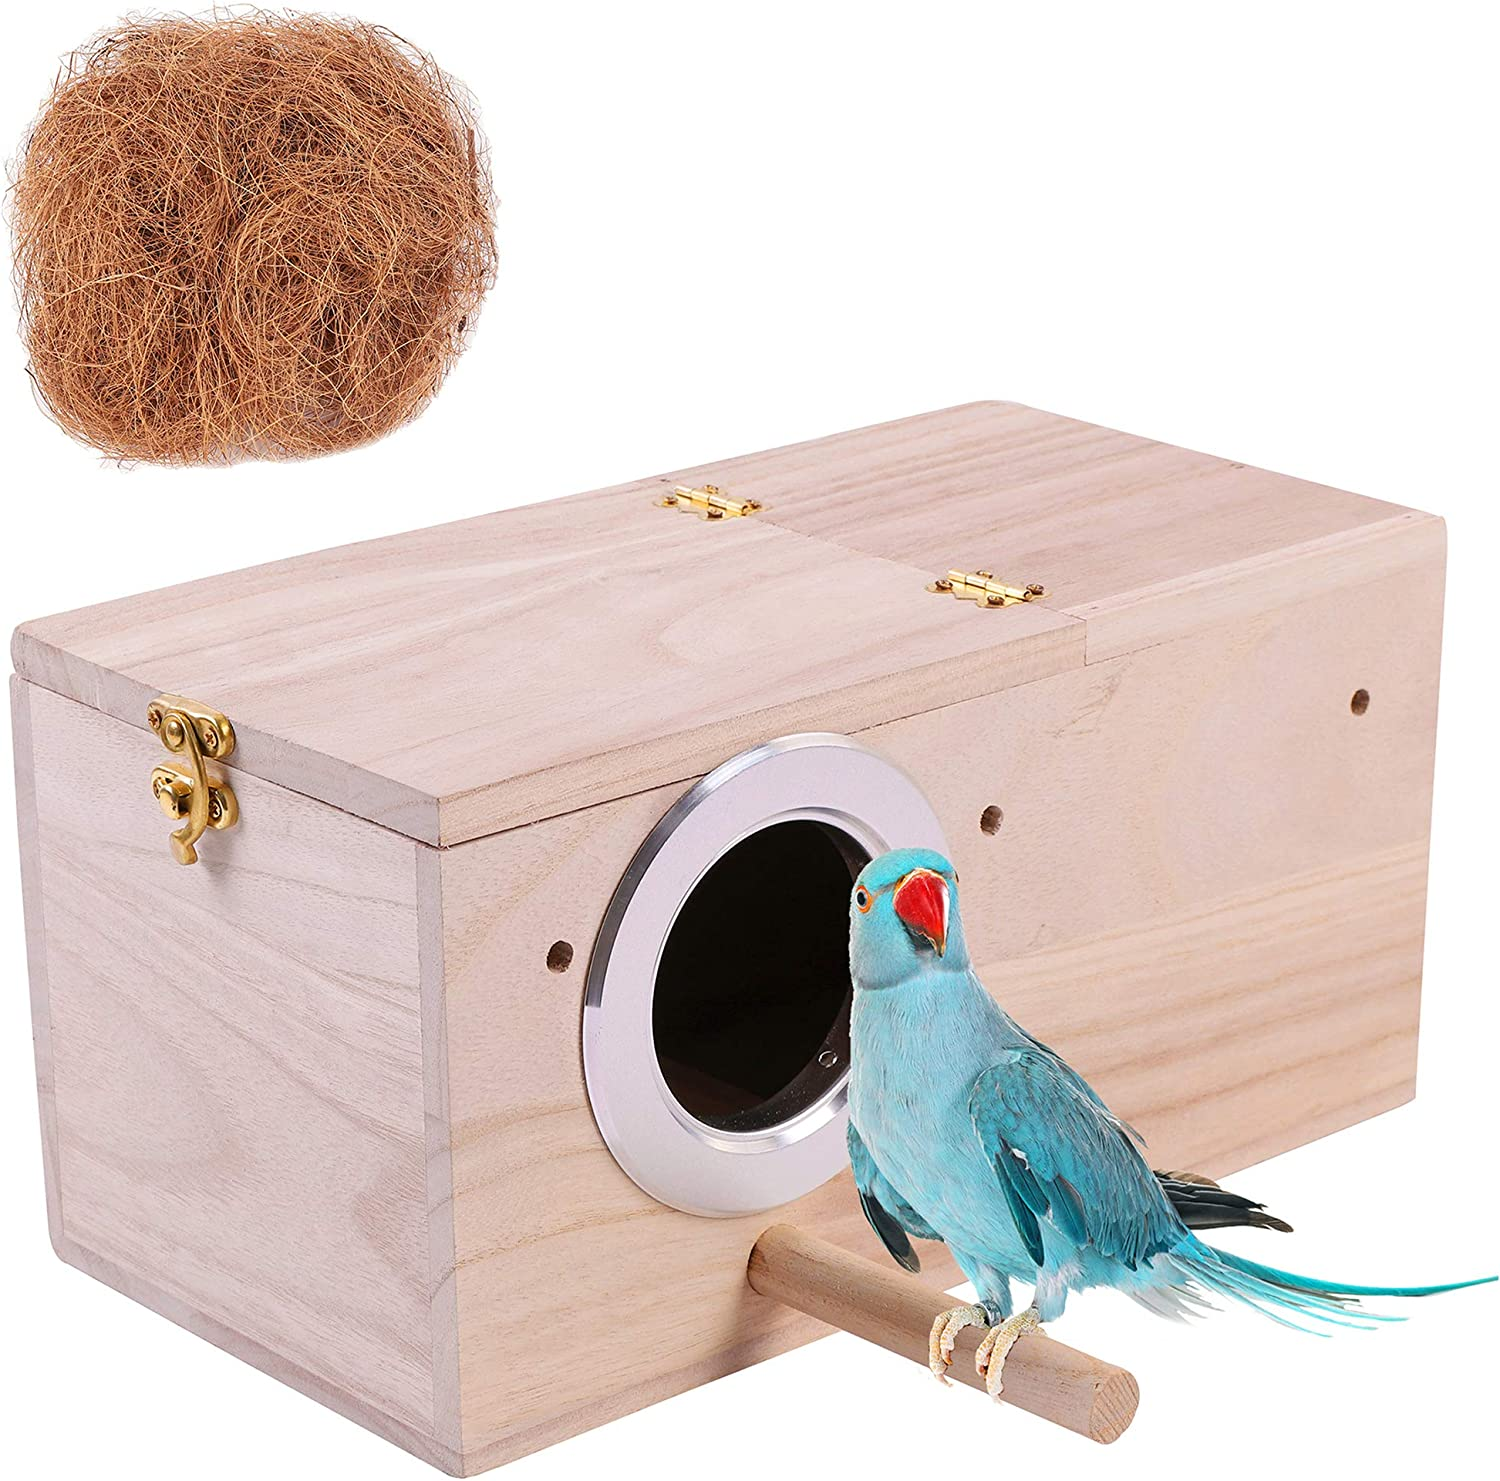 Hand Cheap mail order sales Crafted Parakeet [Alternative dealer] Nest Box; Budgie Natural Bird with C House